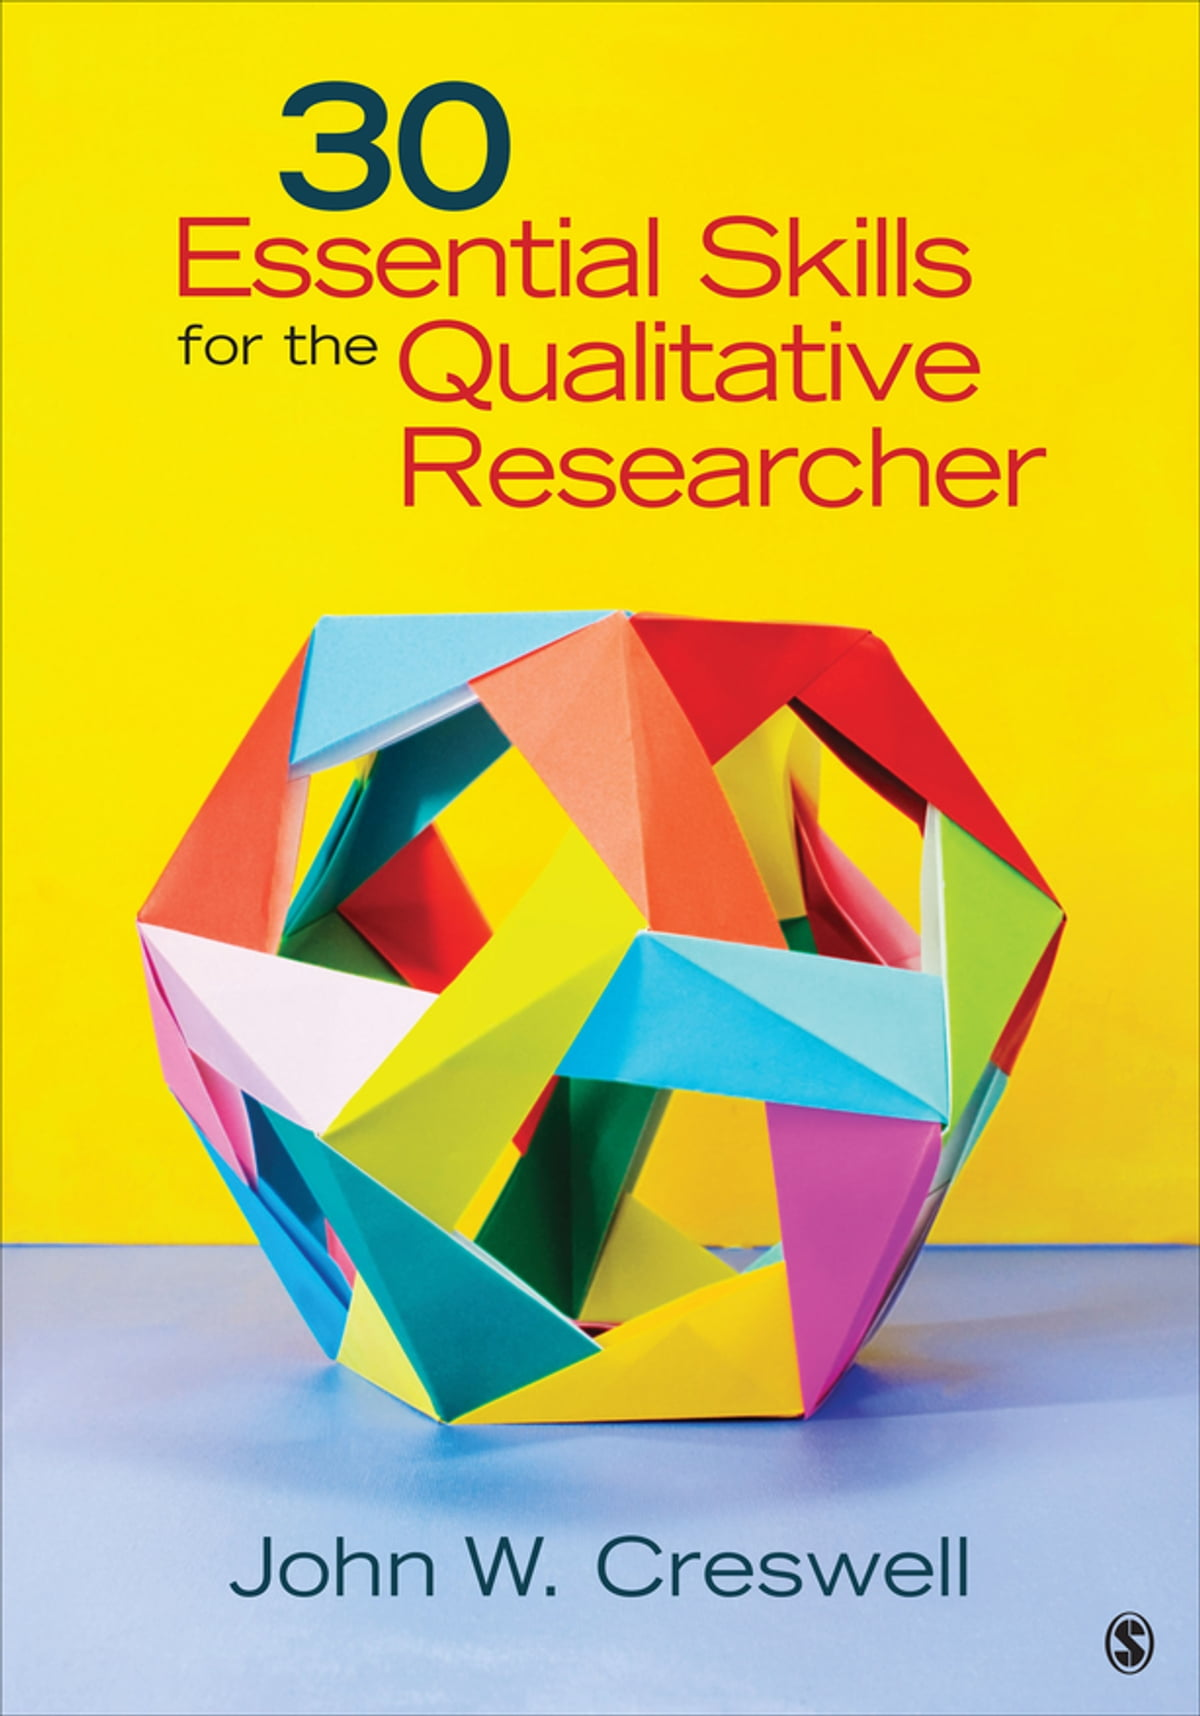 Educational Research Creswell Pdf